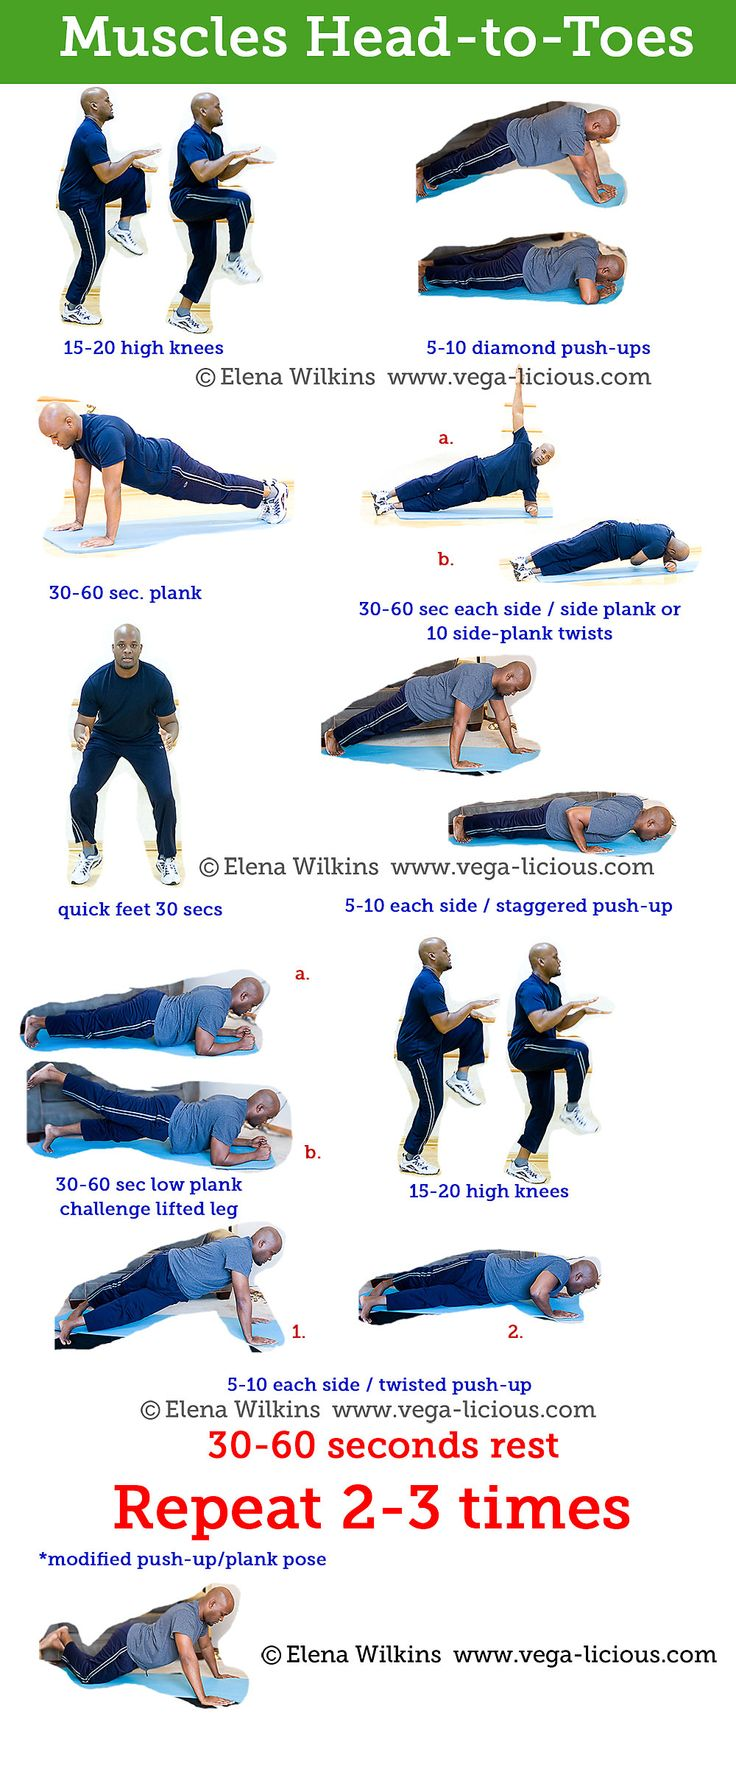 All about Push-Ups and Planks   Muscles Head-to-Toes Workout Routine